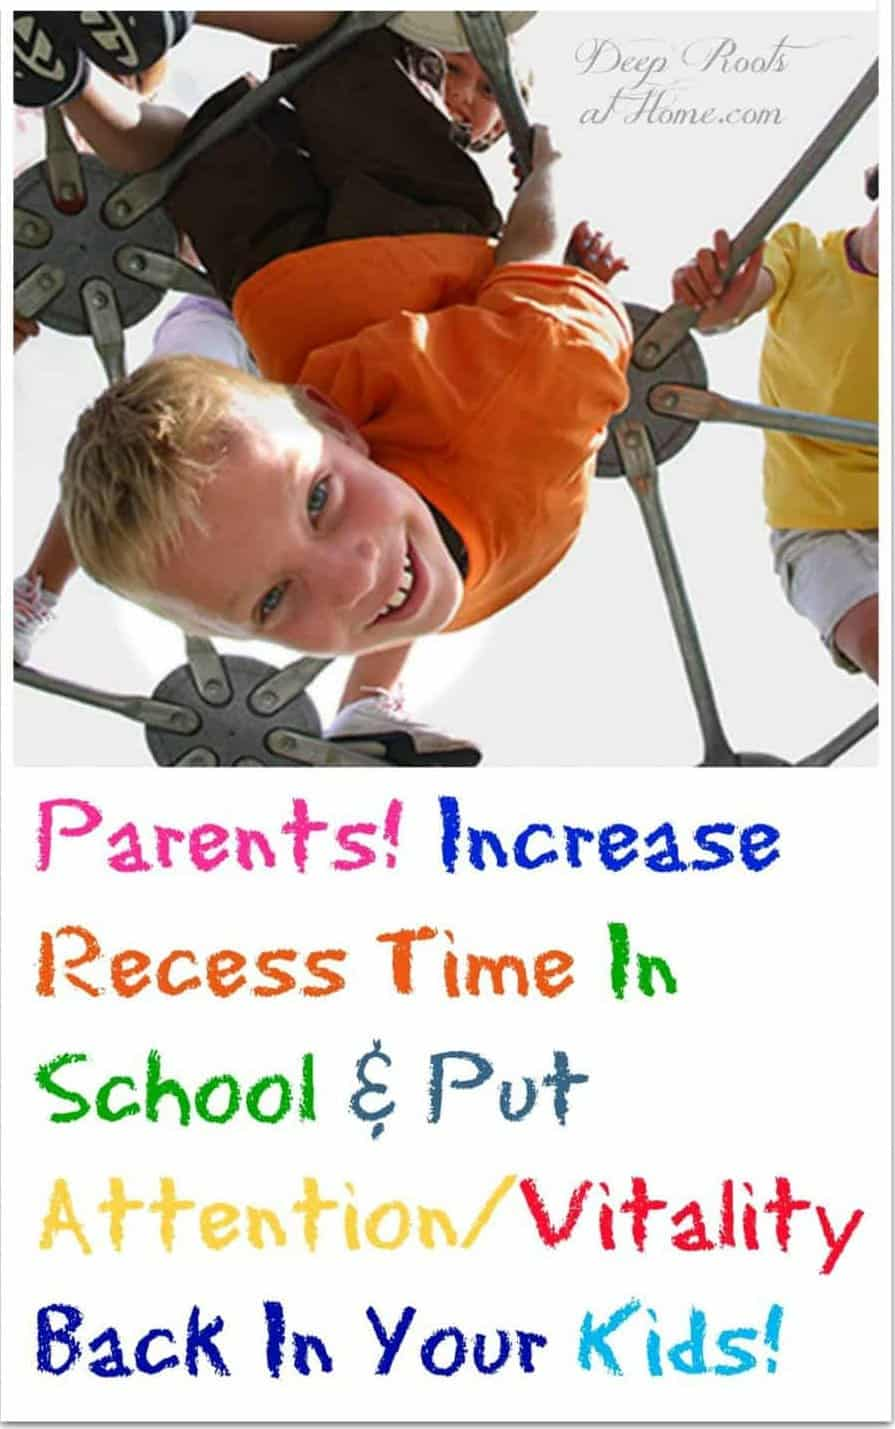 Parents! Increase Recess Time & Put Attention/Vitality Back In the Kids! Kids playing and hanging from a jungle gym.